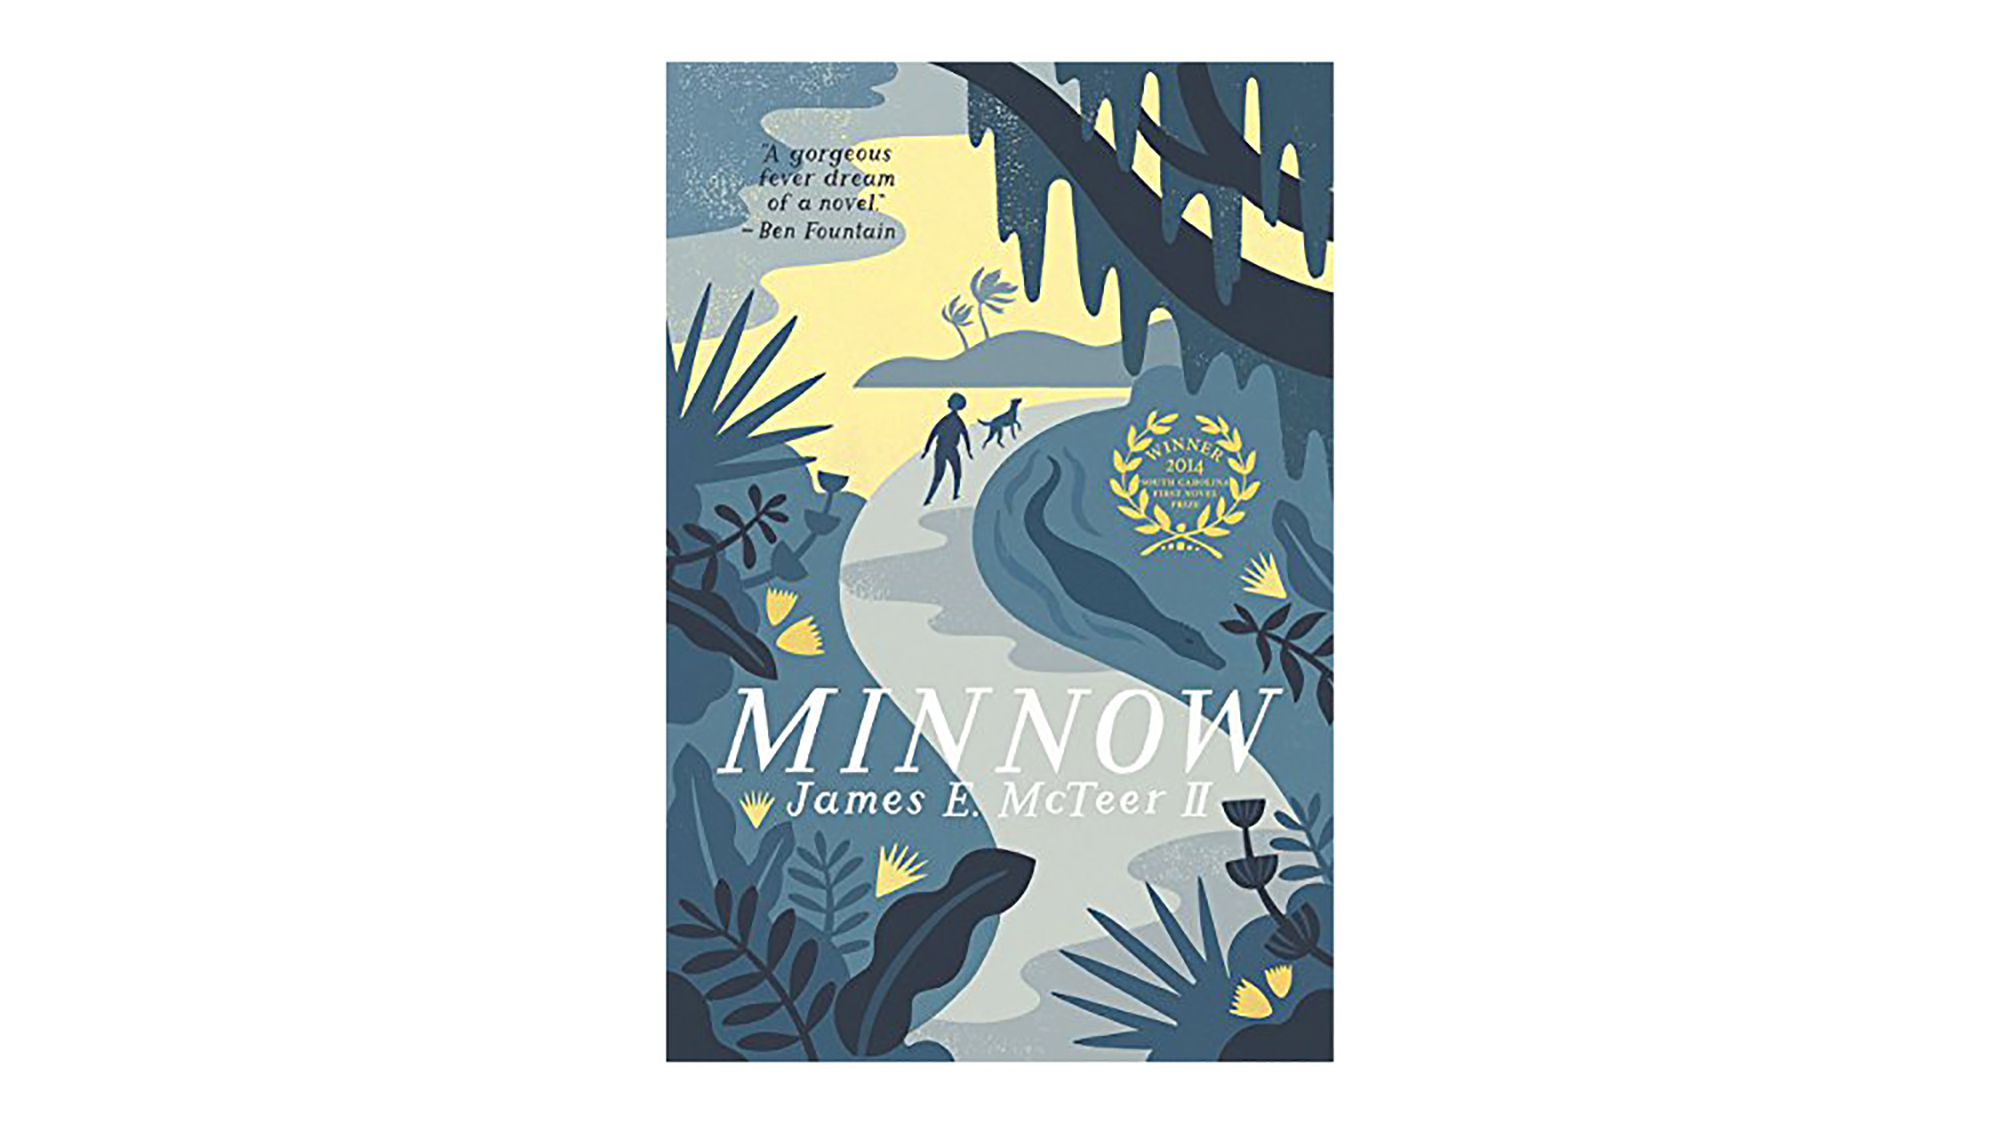 Minnow by James McTeer